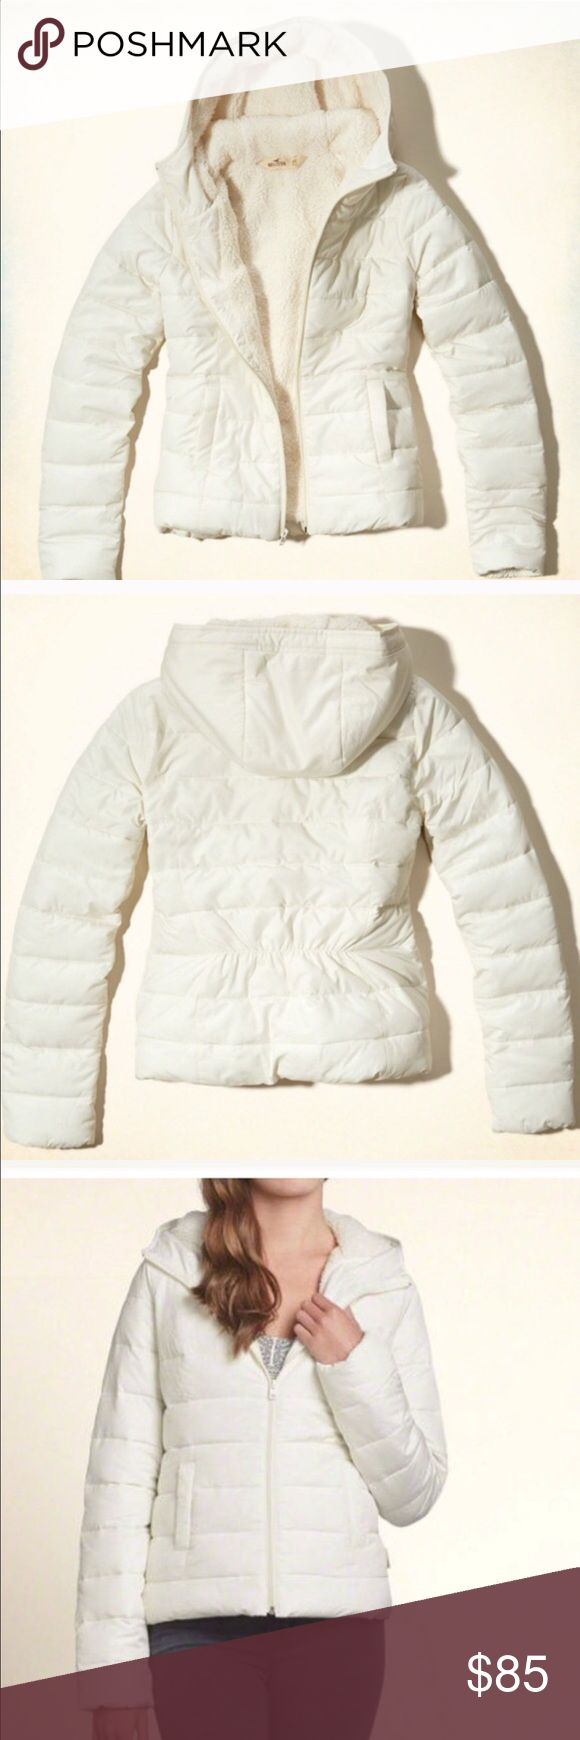 HOLLISTER SHERPA LINED - PUFFER NWOT - THIS JACKET IS NEW, NEVER USED. Jacket is white. Sherpa lined inside and in hoodie. Super warm and soft. Water resistant❌No stains, rips, holes or stains❌ 🚫No trades, No lowballs, No merc🚫 ONLY SERIOUS BUYERS.                                                  💗Condition: Never used, No flaws 💗Smoke free home 💗No trades 💗No returns 💗No modeling  💗Shipping next day 💗OPEN TO reasonable OFFERS  💗BUNDLE and save more Hollister Jackets & Coats…